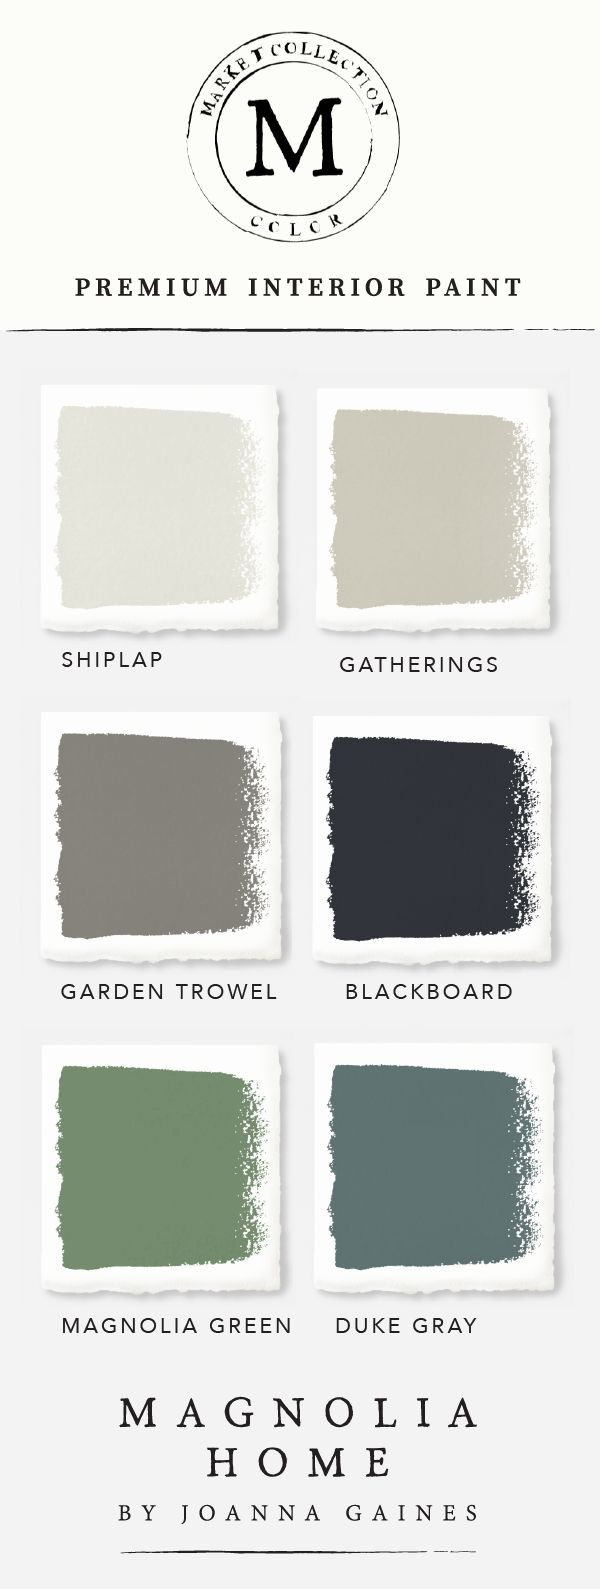 3593 best color and paint ideas images on pinterest for Magnolia home paint colors